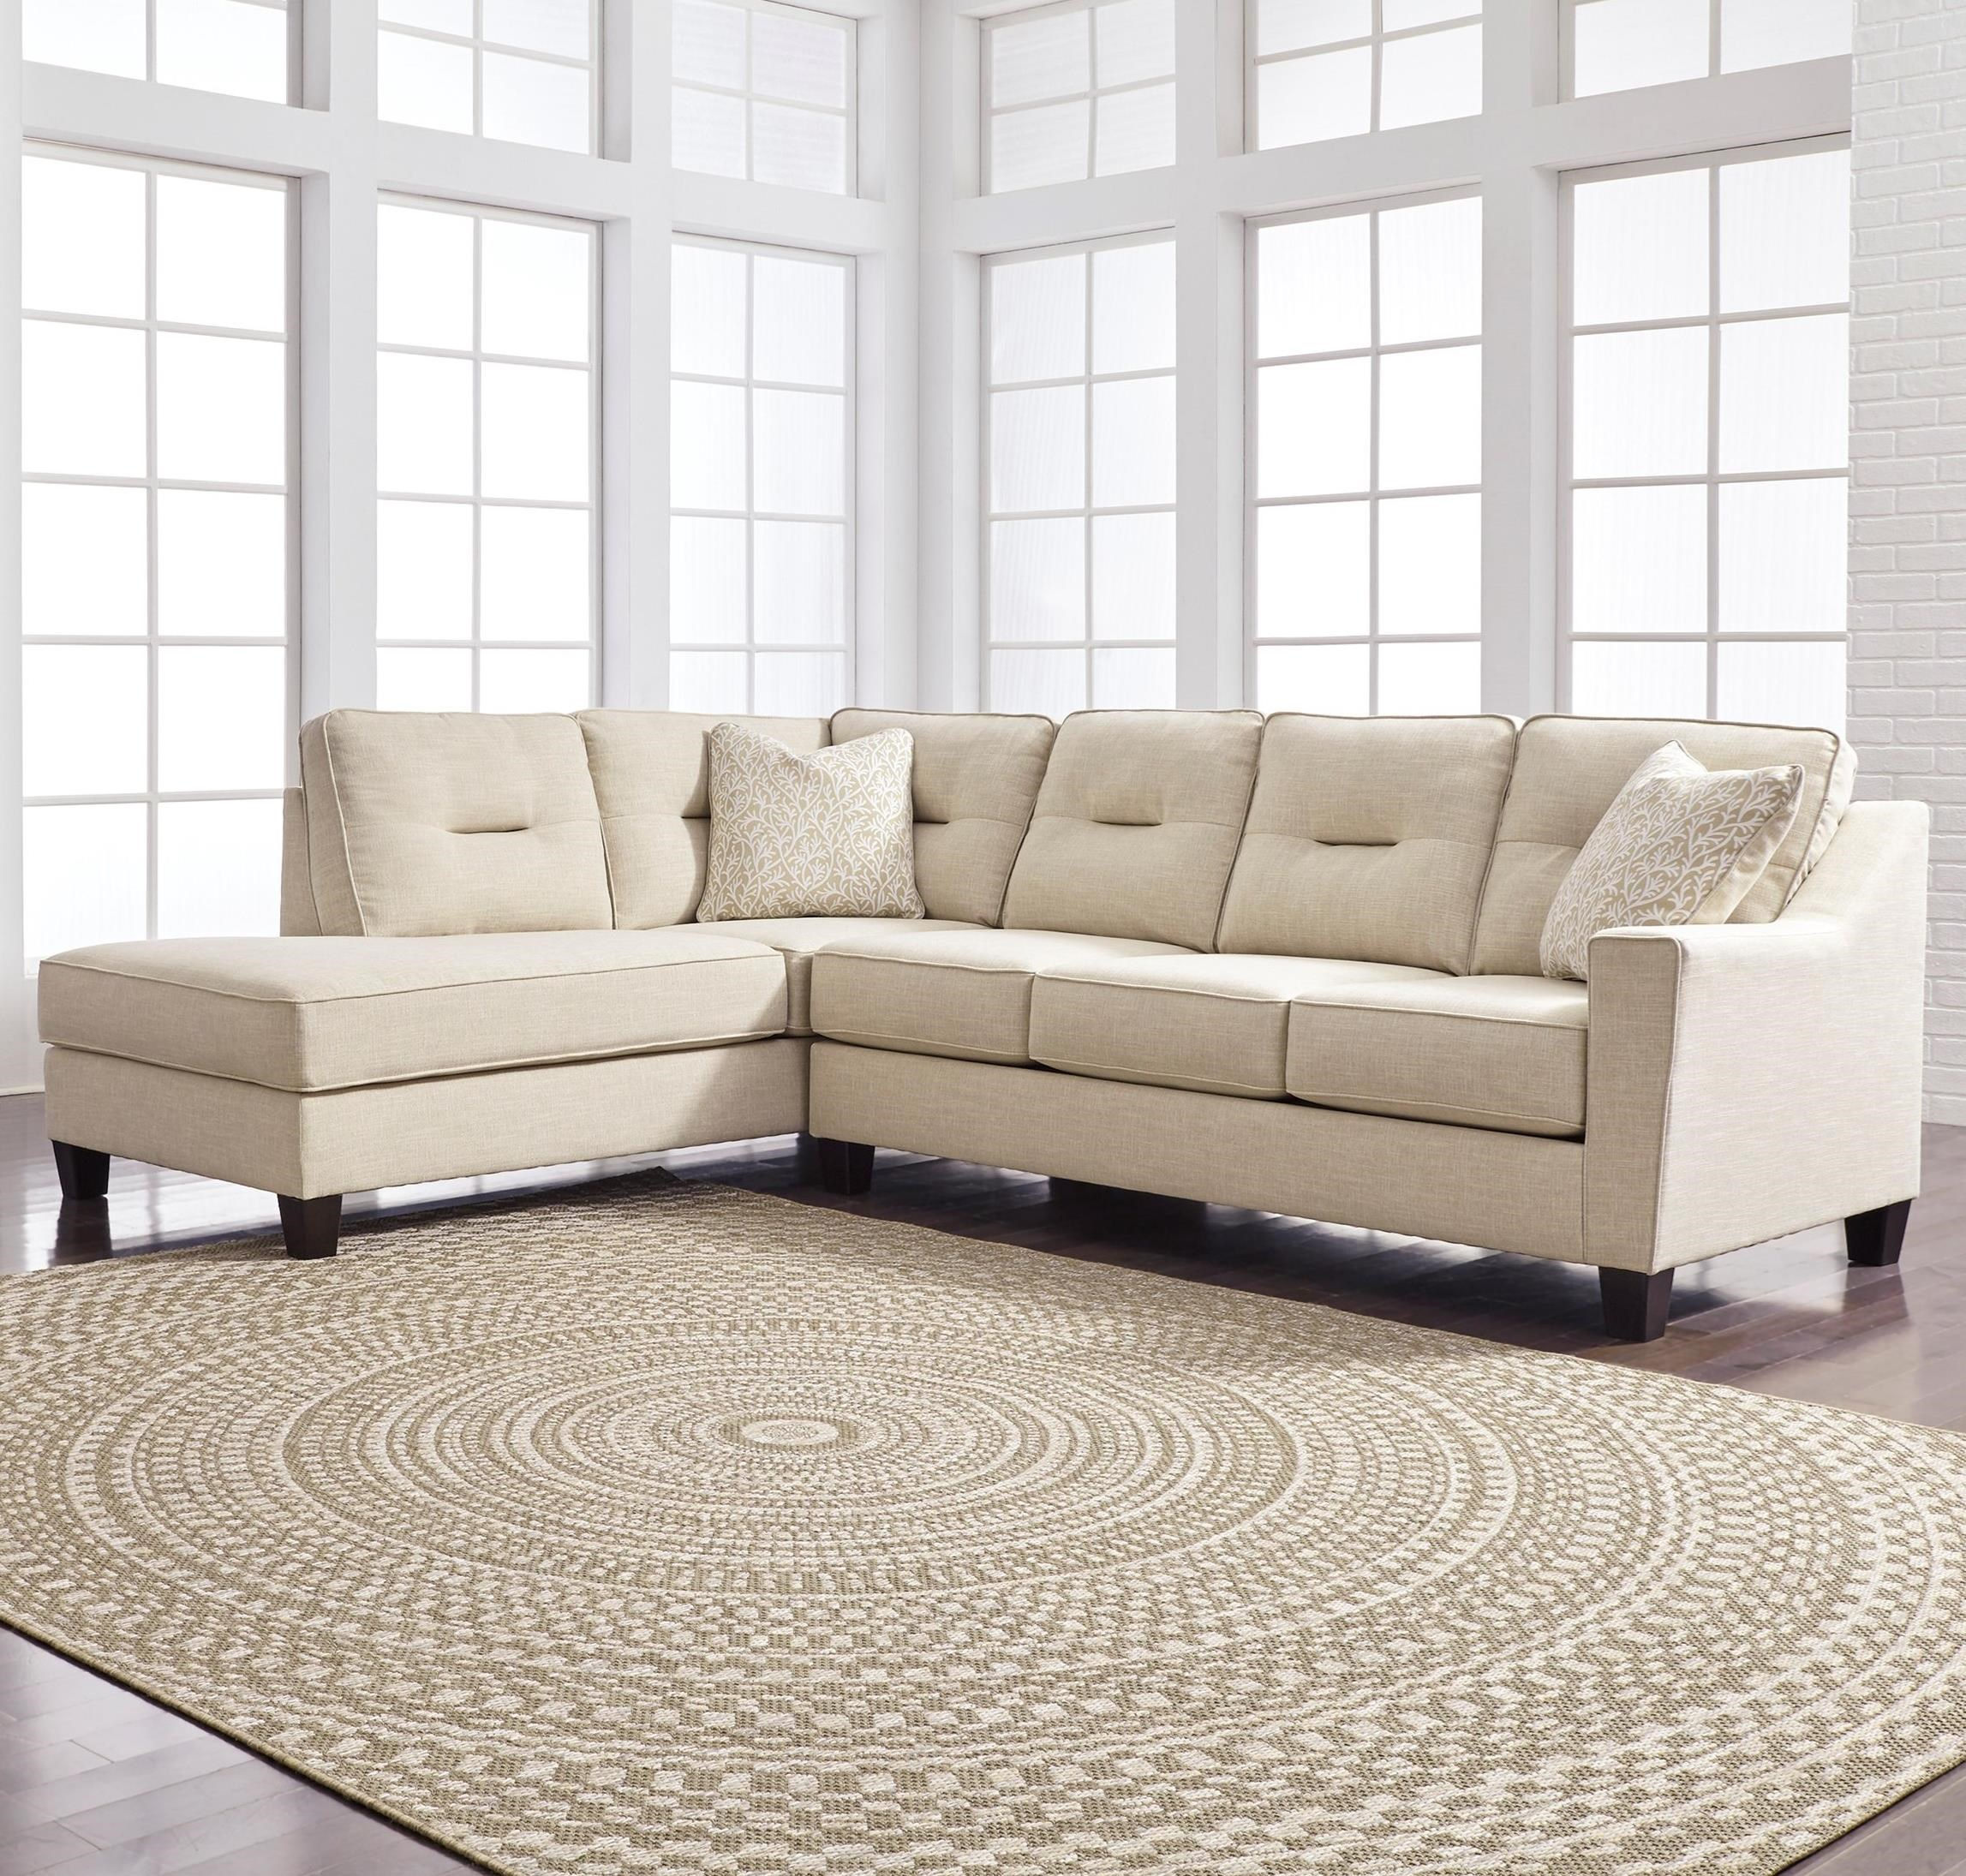 Kirwin nuvella sectional with sleeper sofa left chaise for K furniture fabric world